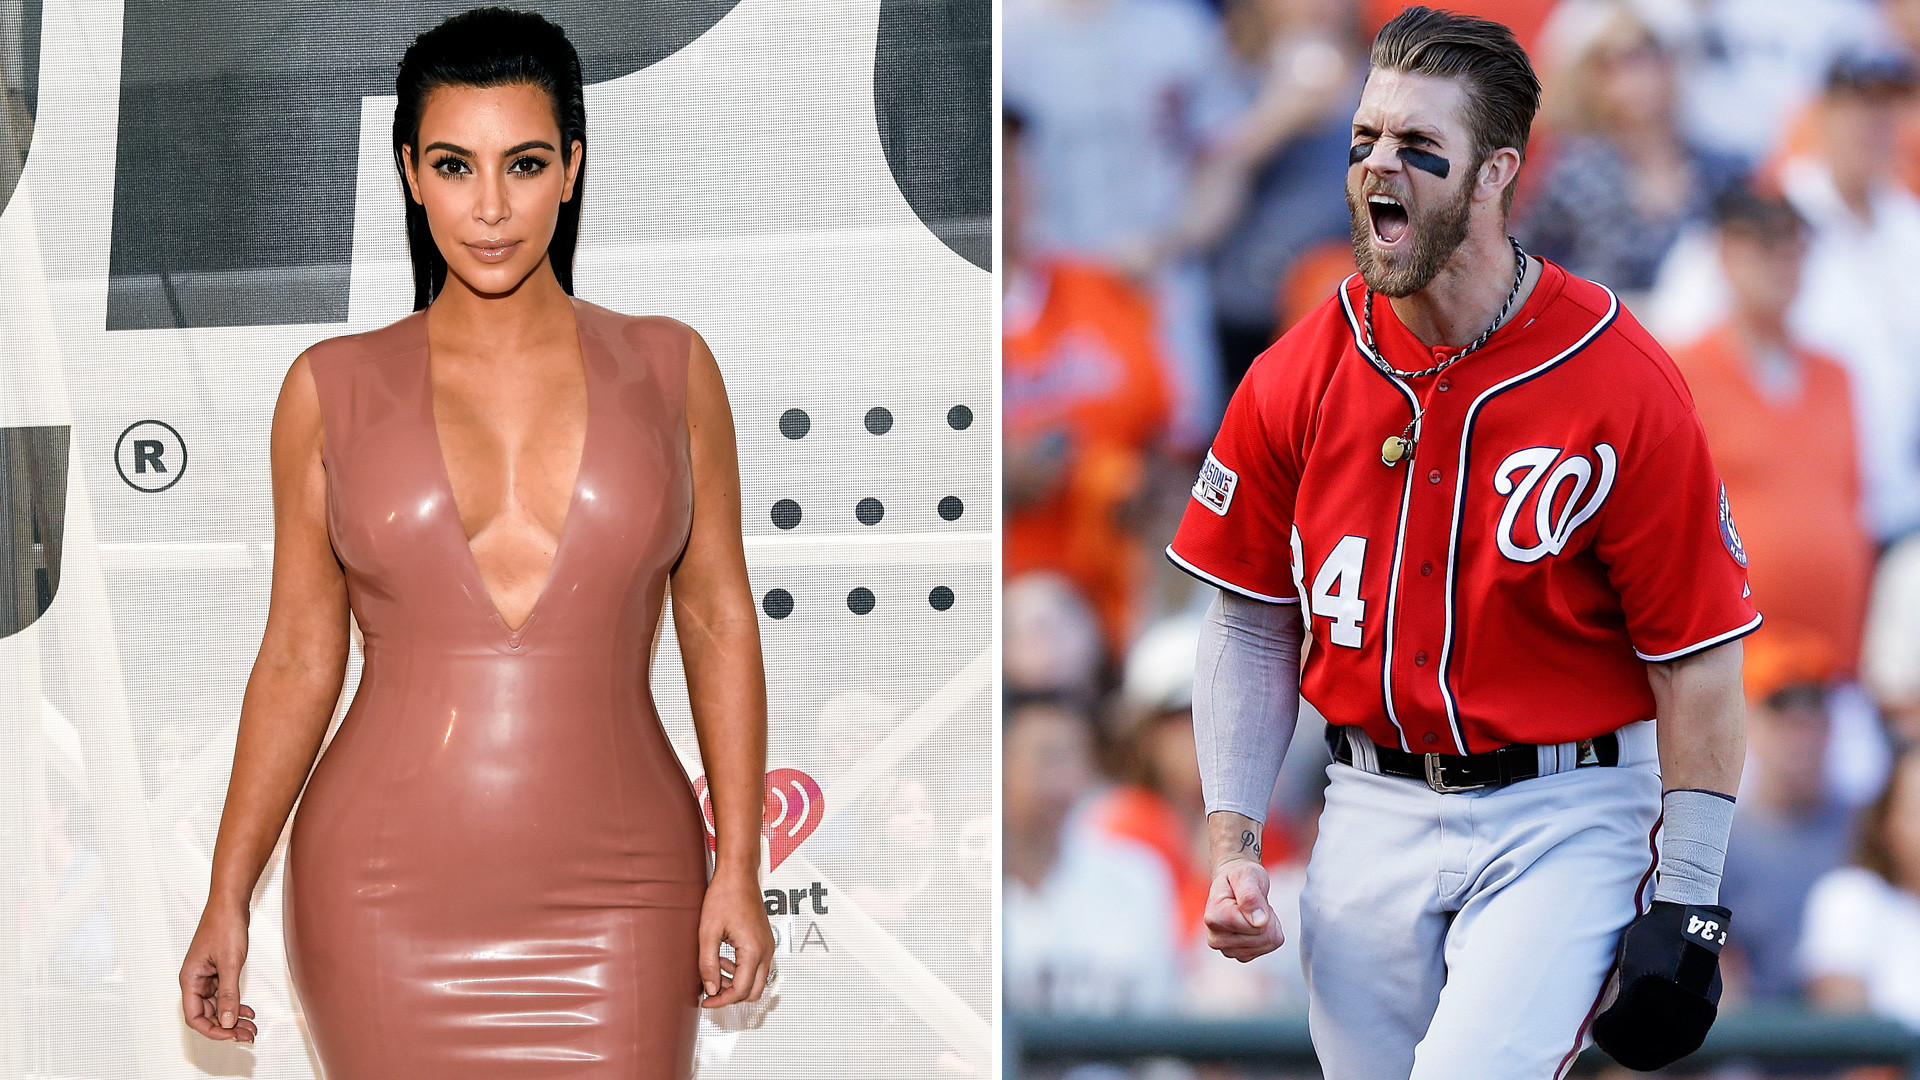 We should just shut up and let Bryce be Bryce and Kimmy be nude | MLB |  Sporting News